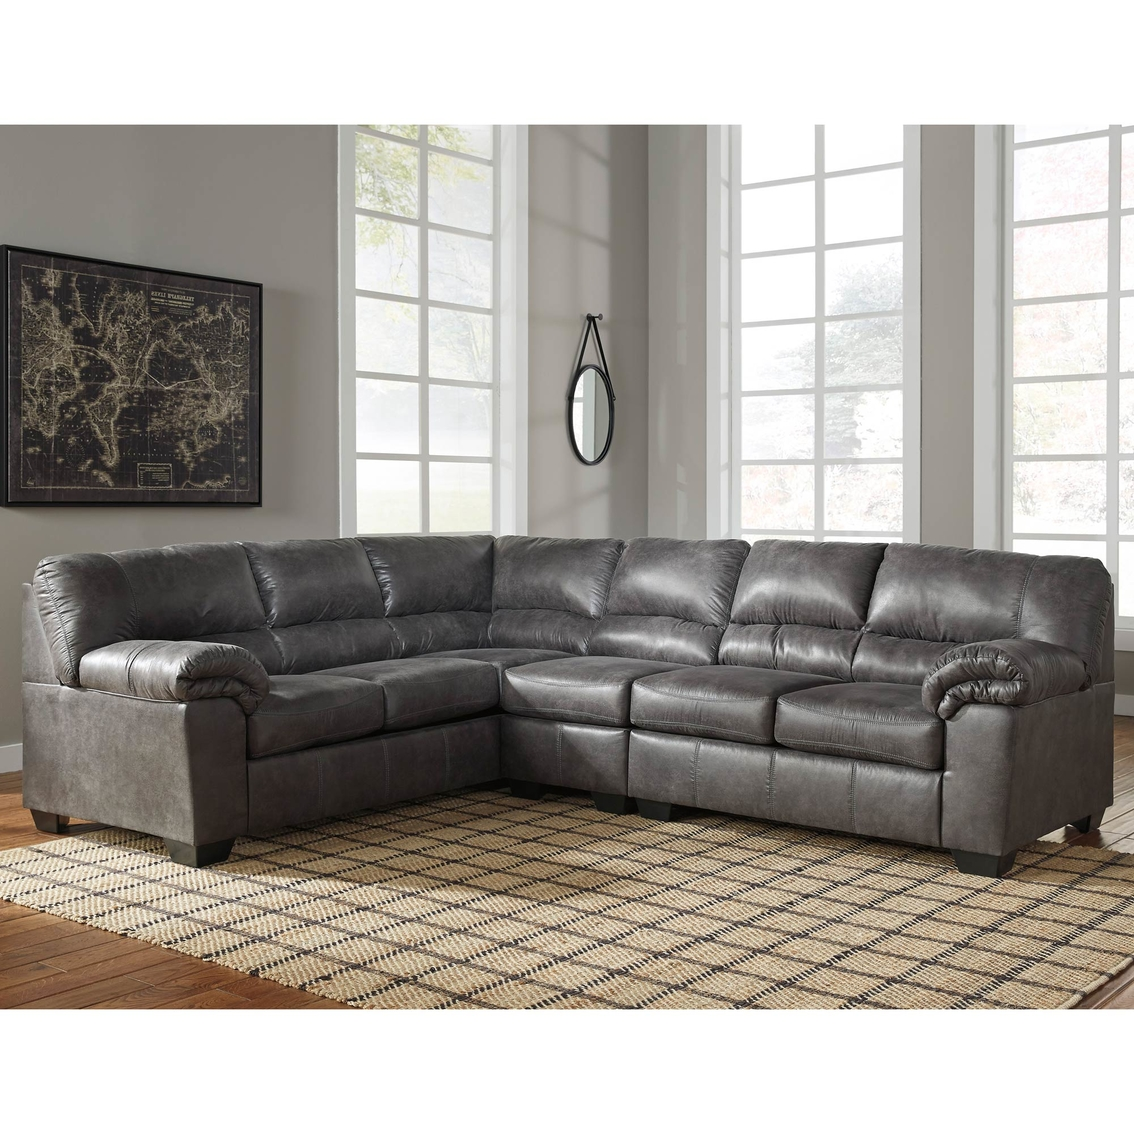 Signature Design By Ashley Bladen 3 Pc Sectional Raf